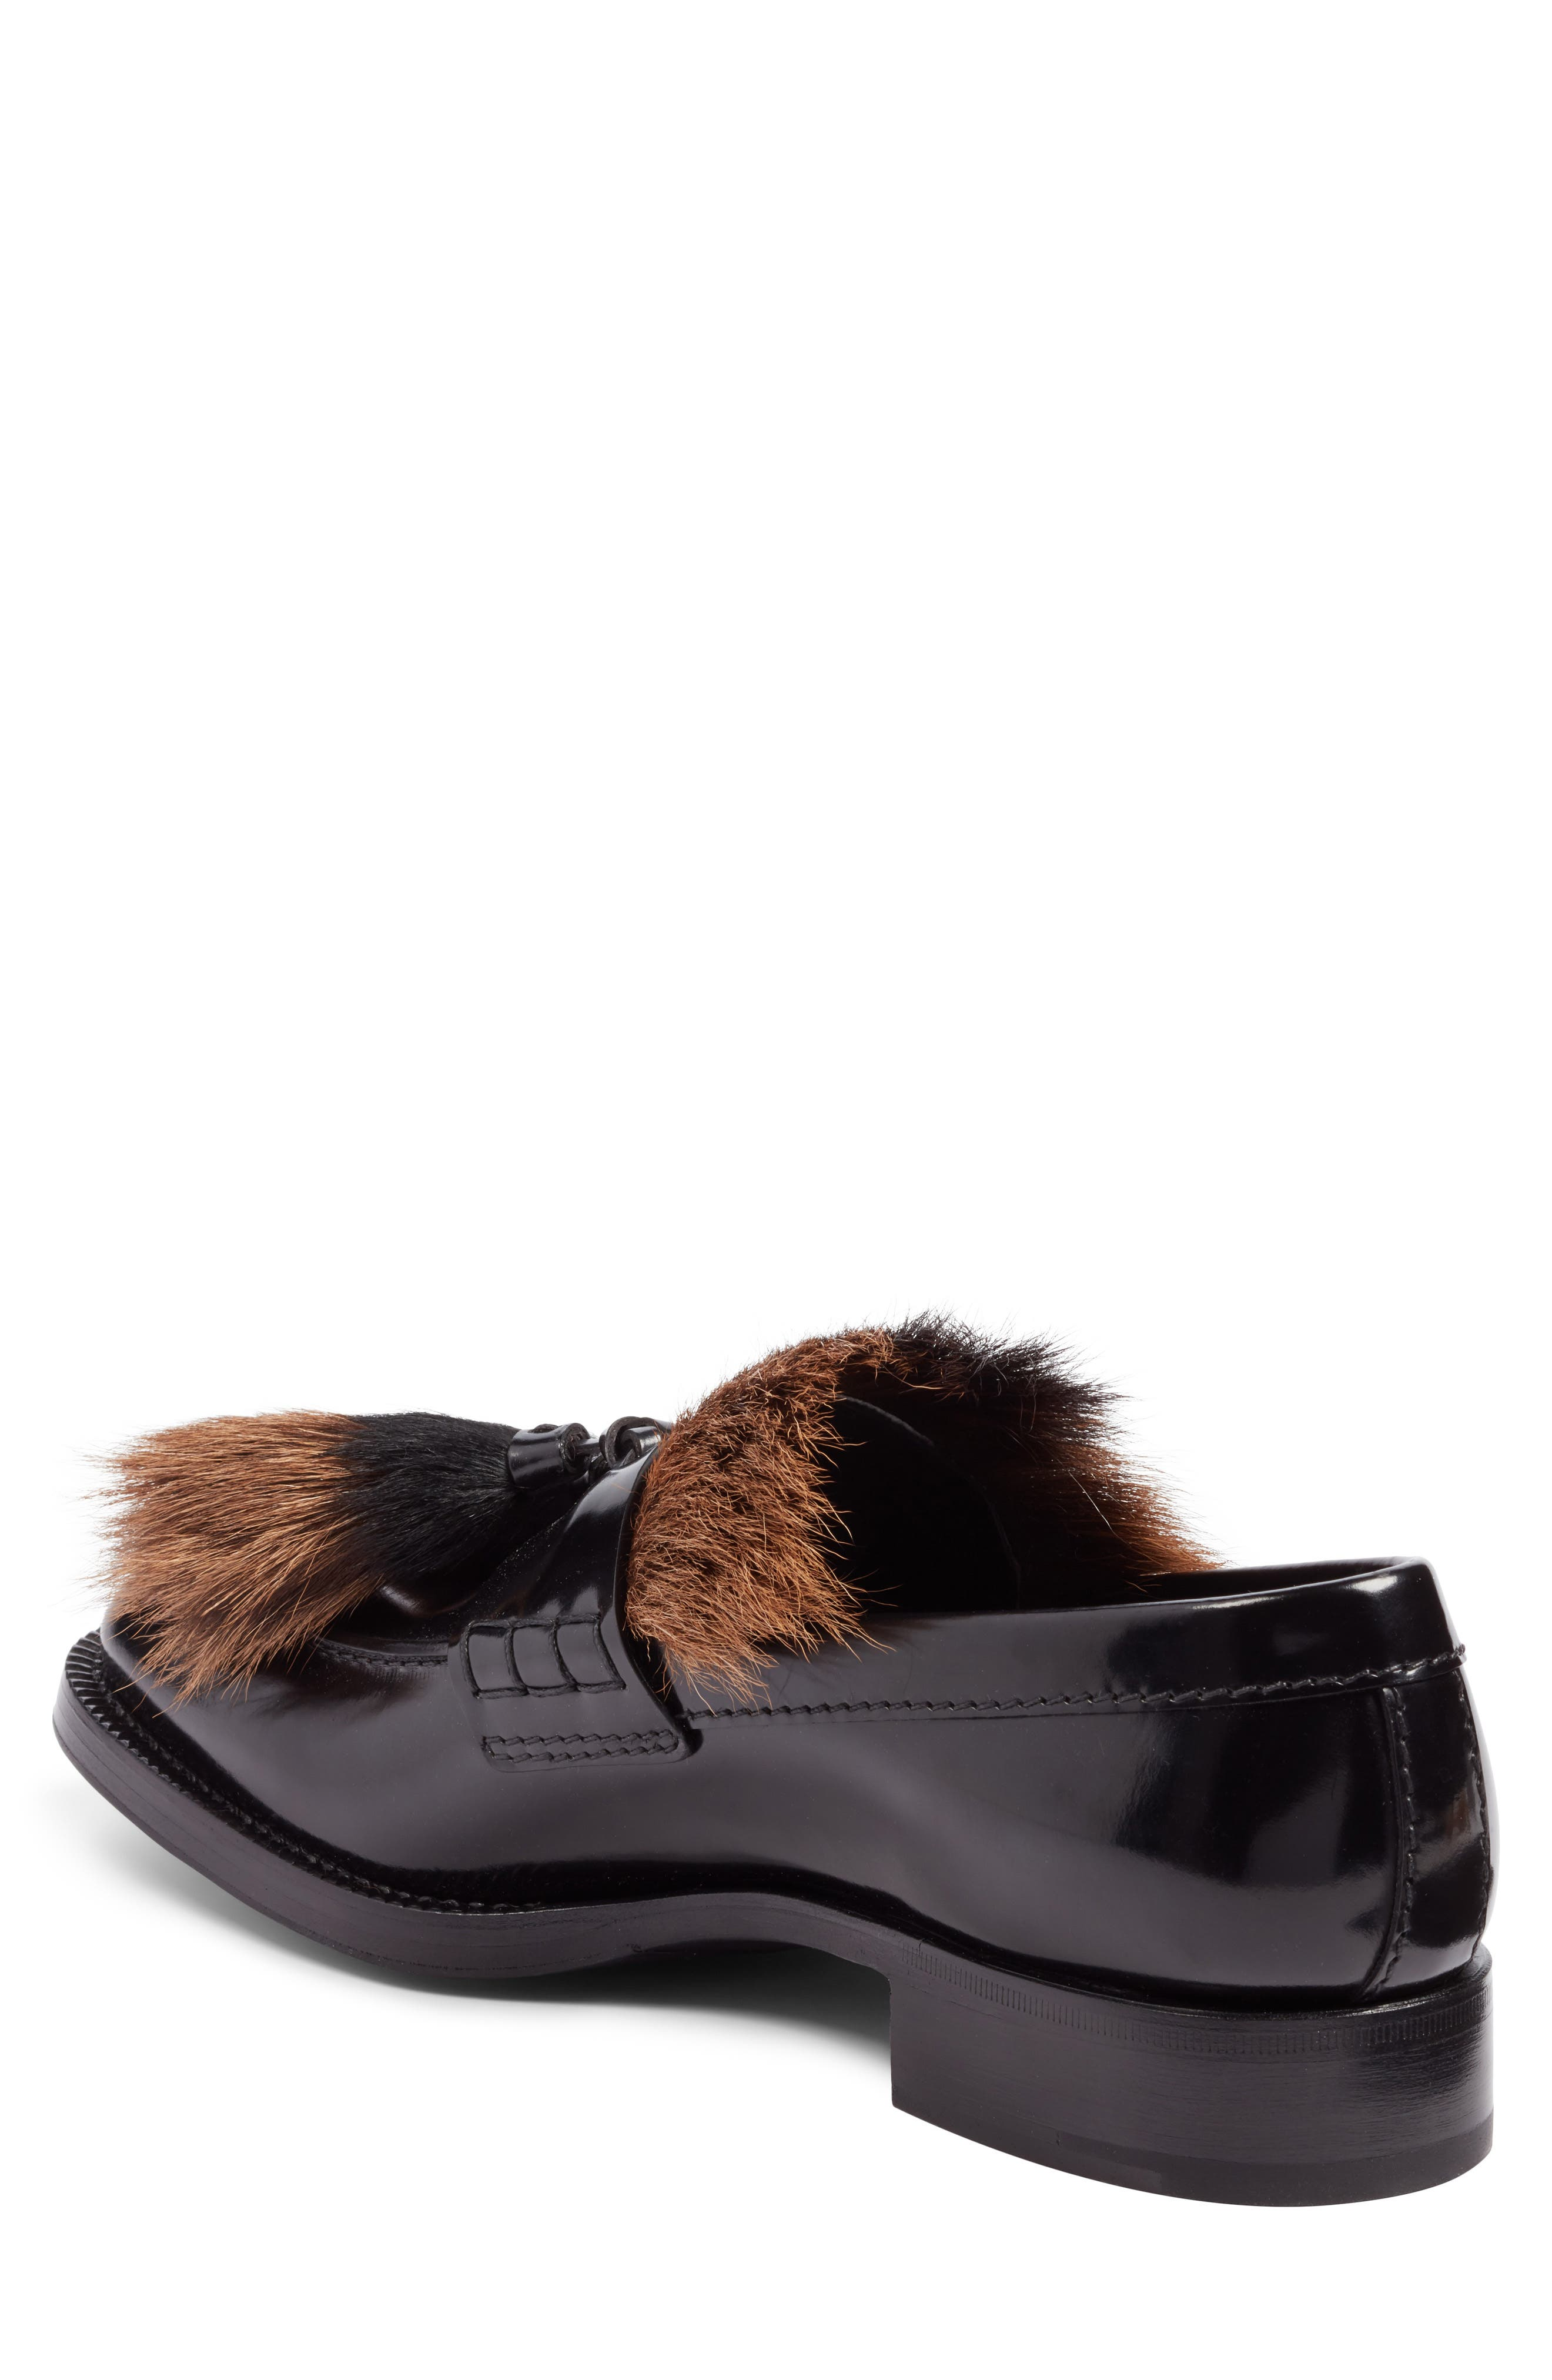 Tassel Loafer with Genuine Goat Hair Trim,                             Alternate thumbnail 2, color,                             Nero Leather